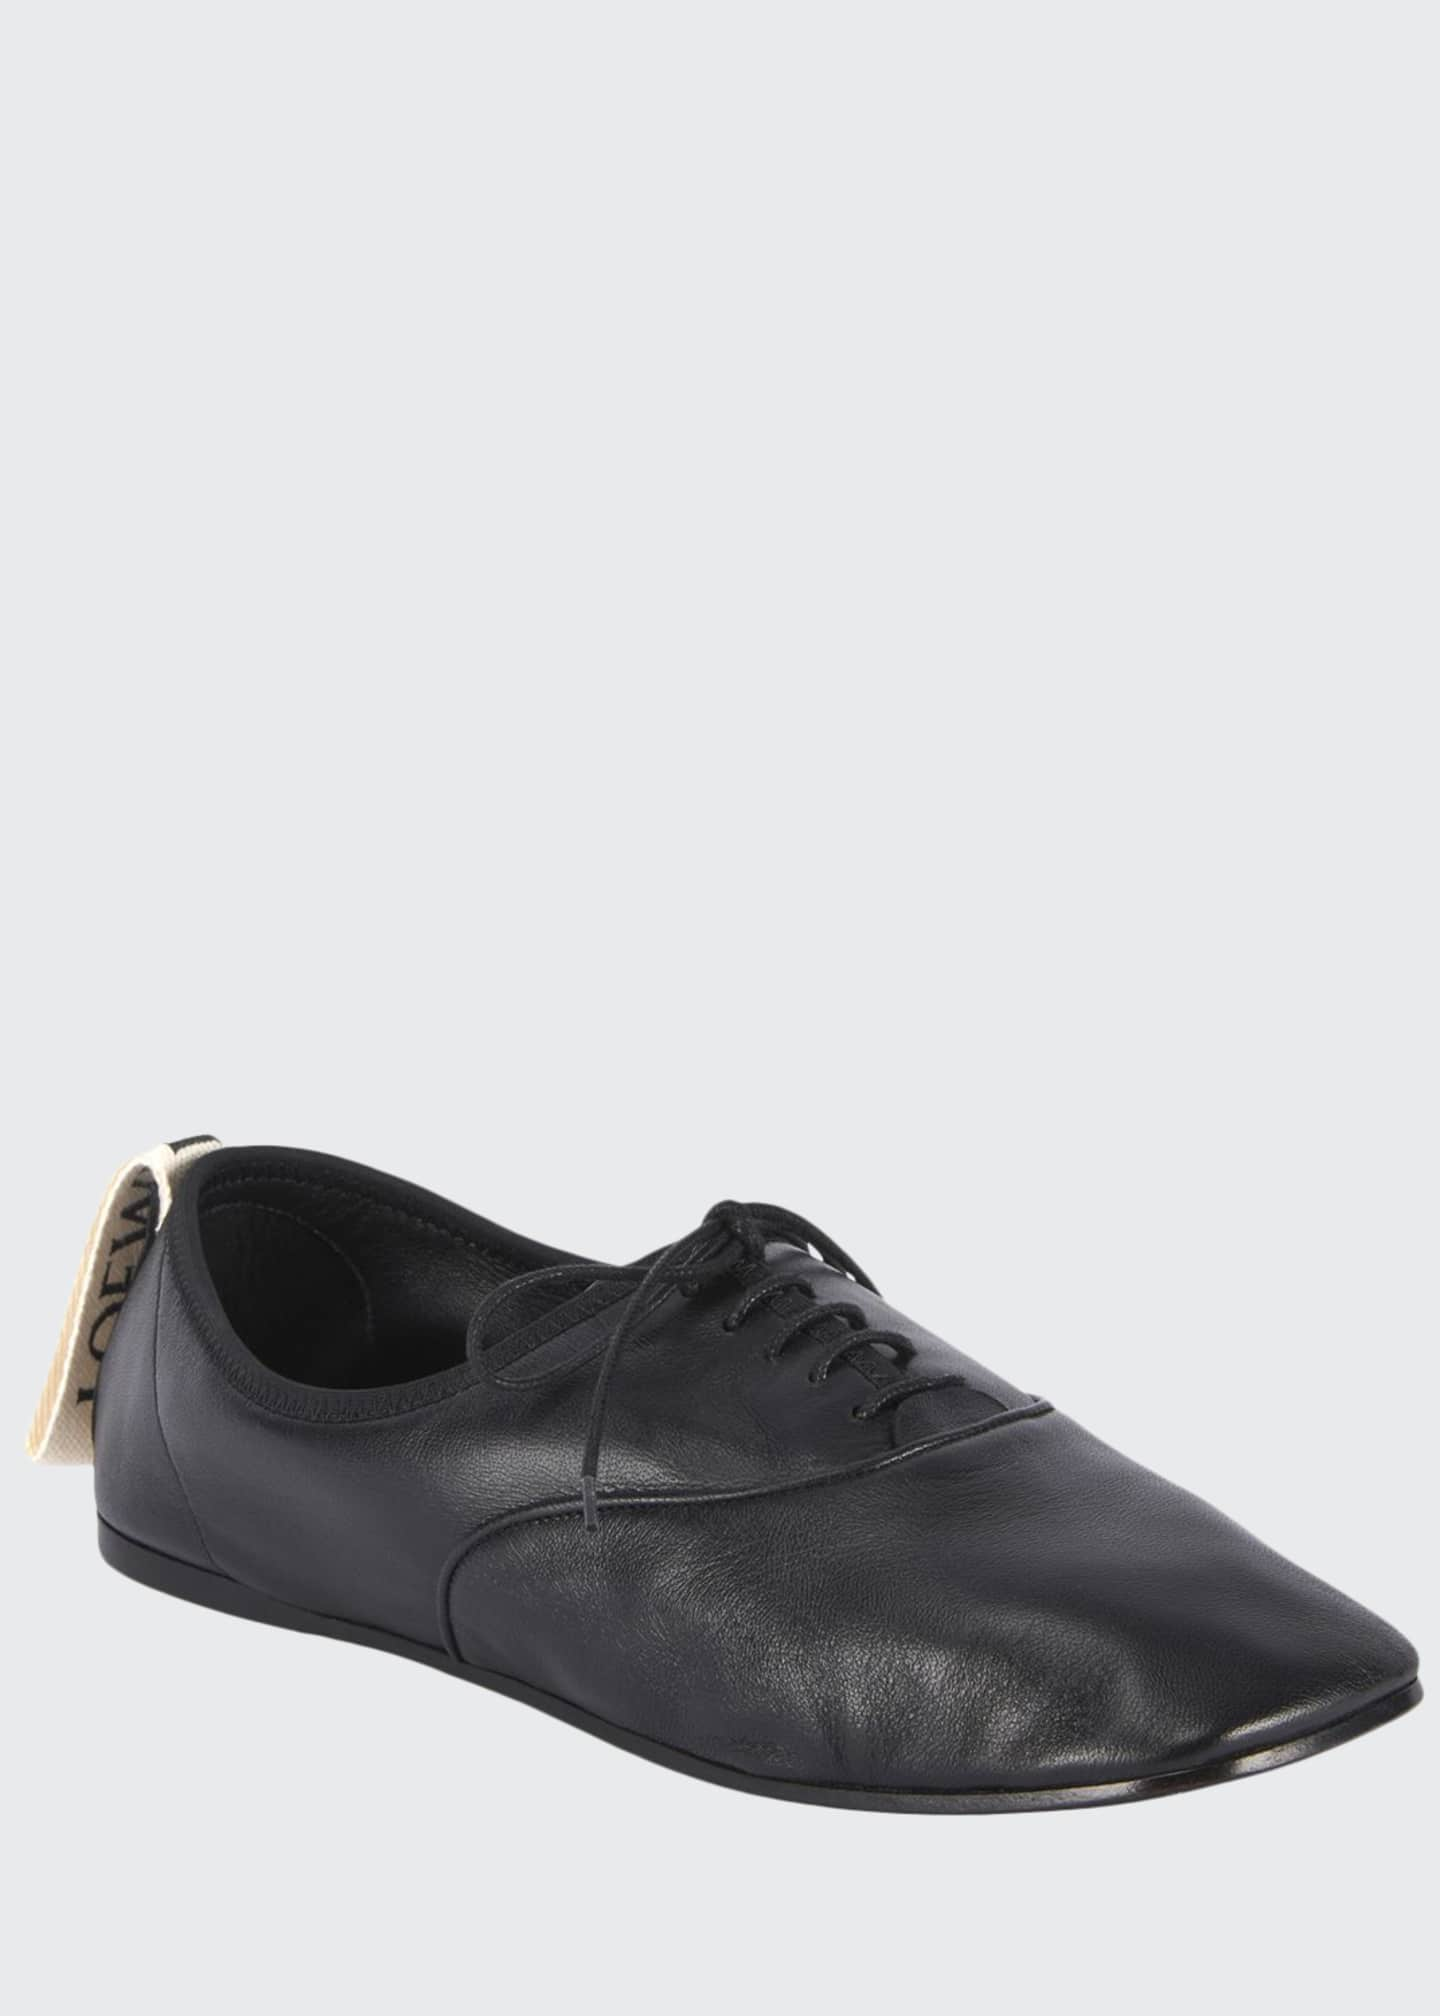 Loewe Soft Leather Derby Flats, Black